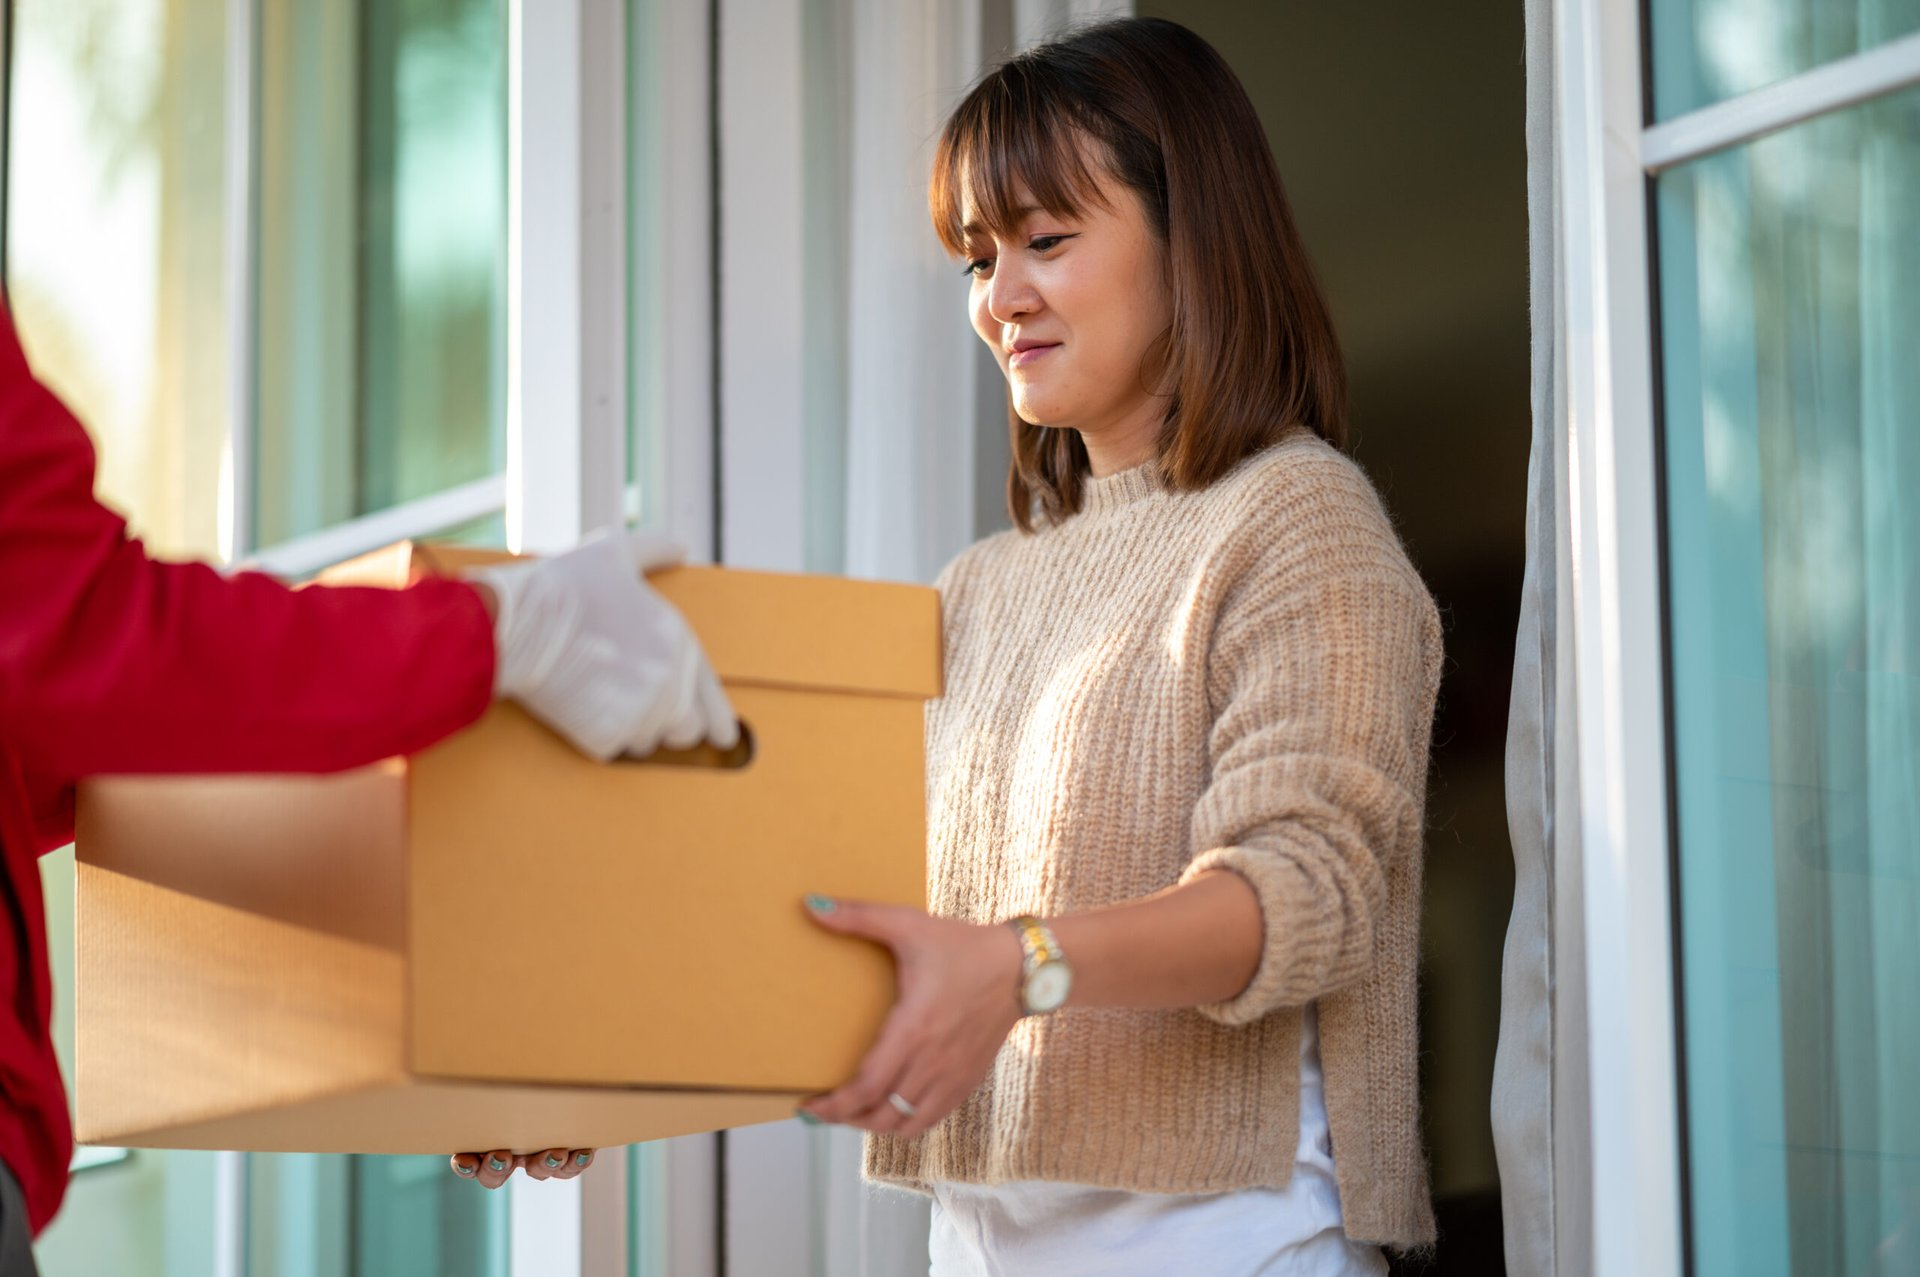 Woman receiving delivery